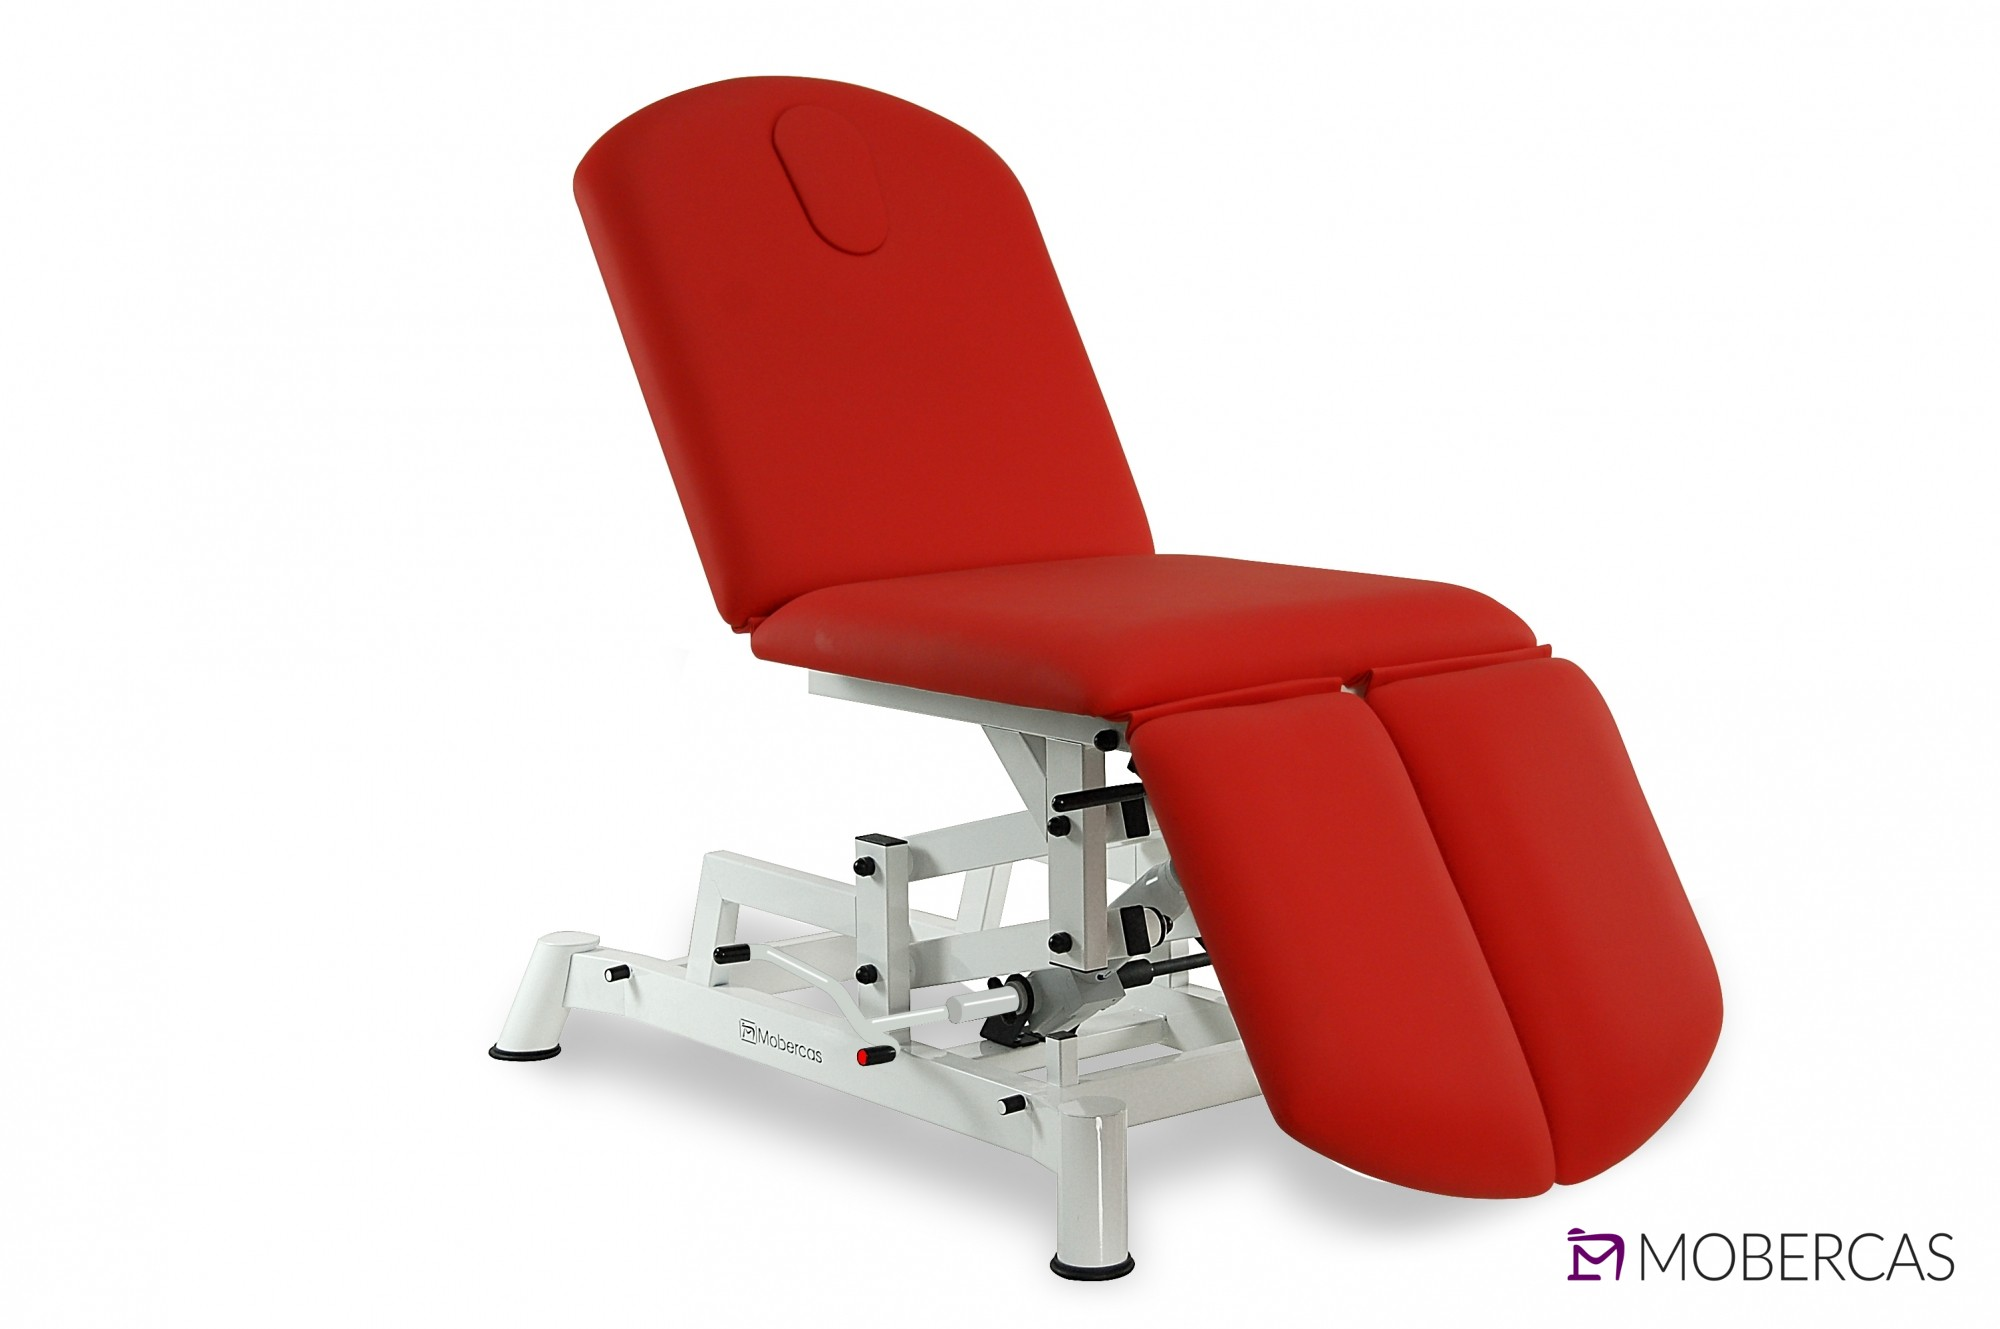 Table - Fauteuil de massage hydraulique  CH-1130-P